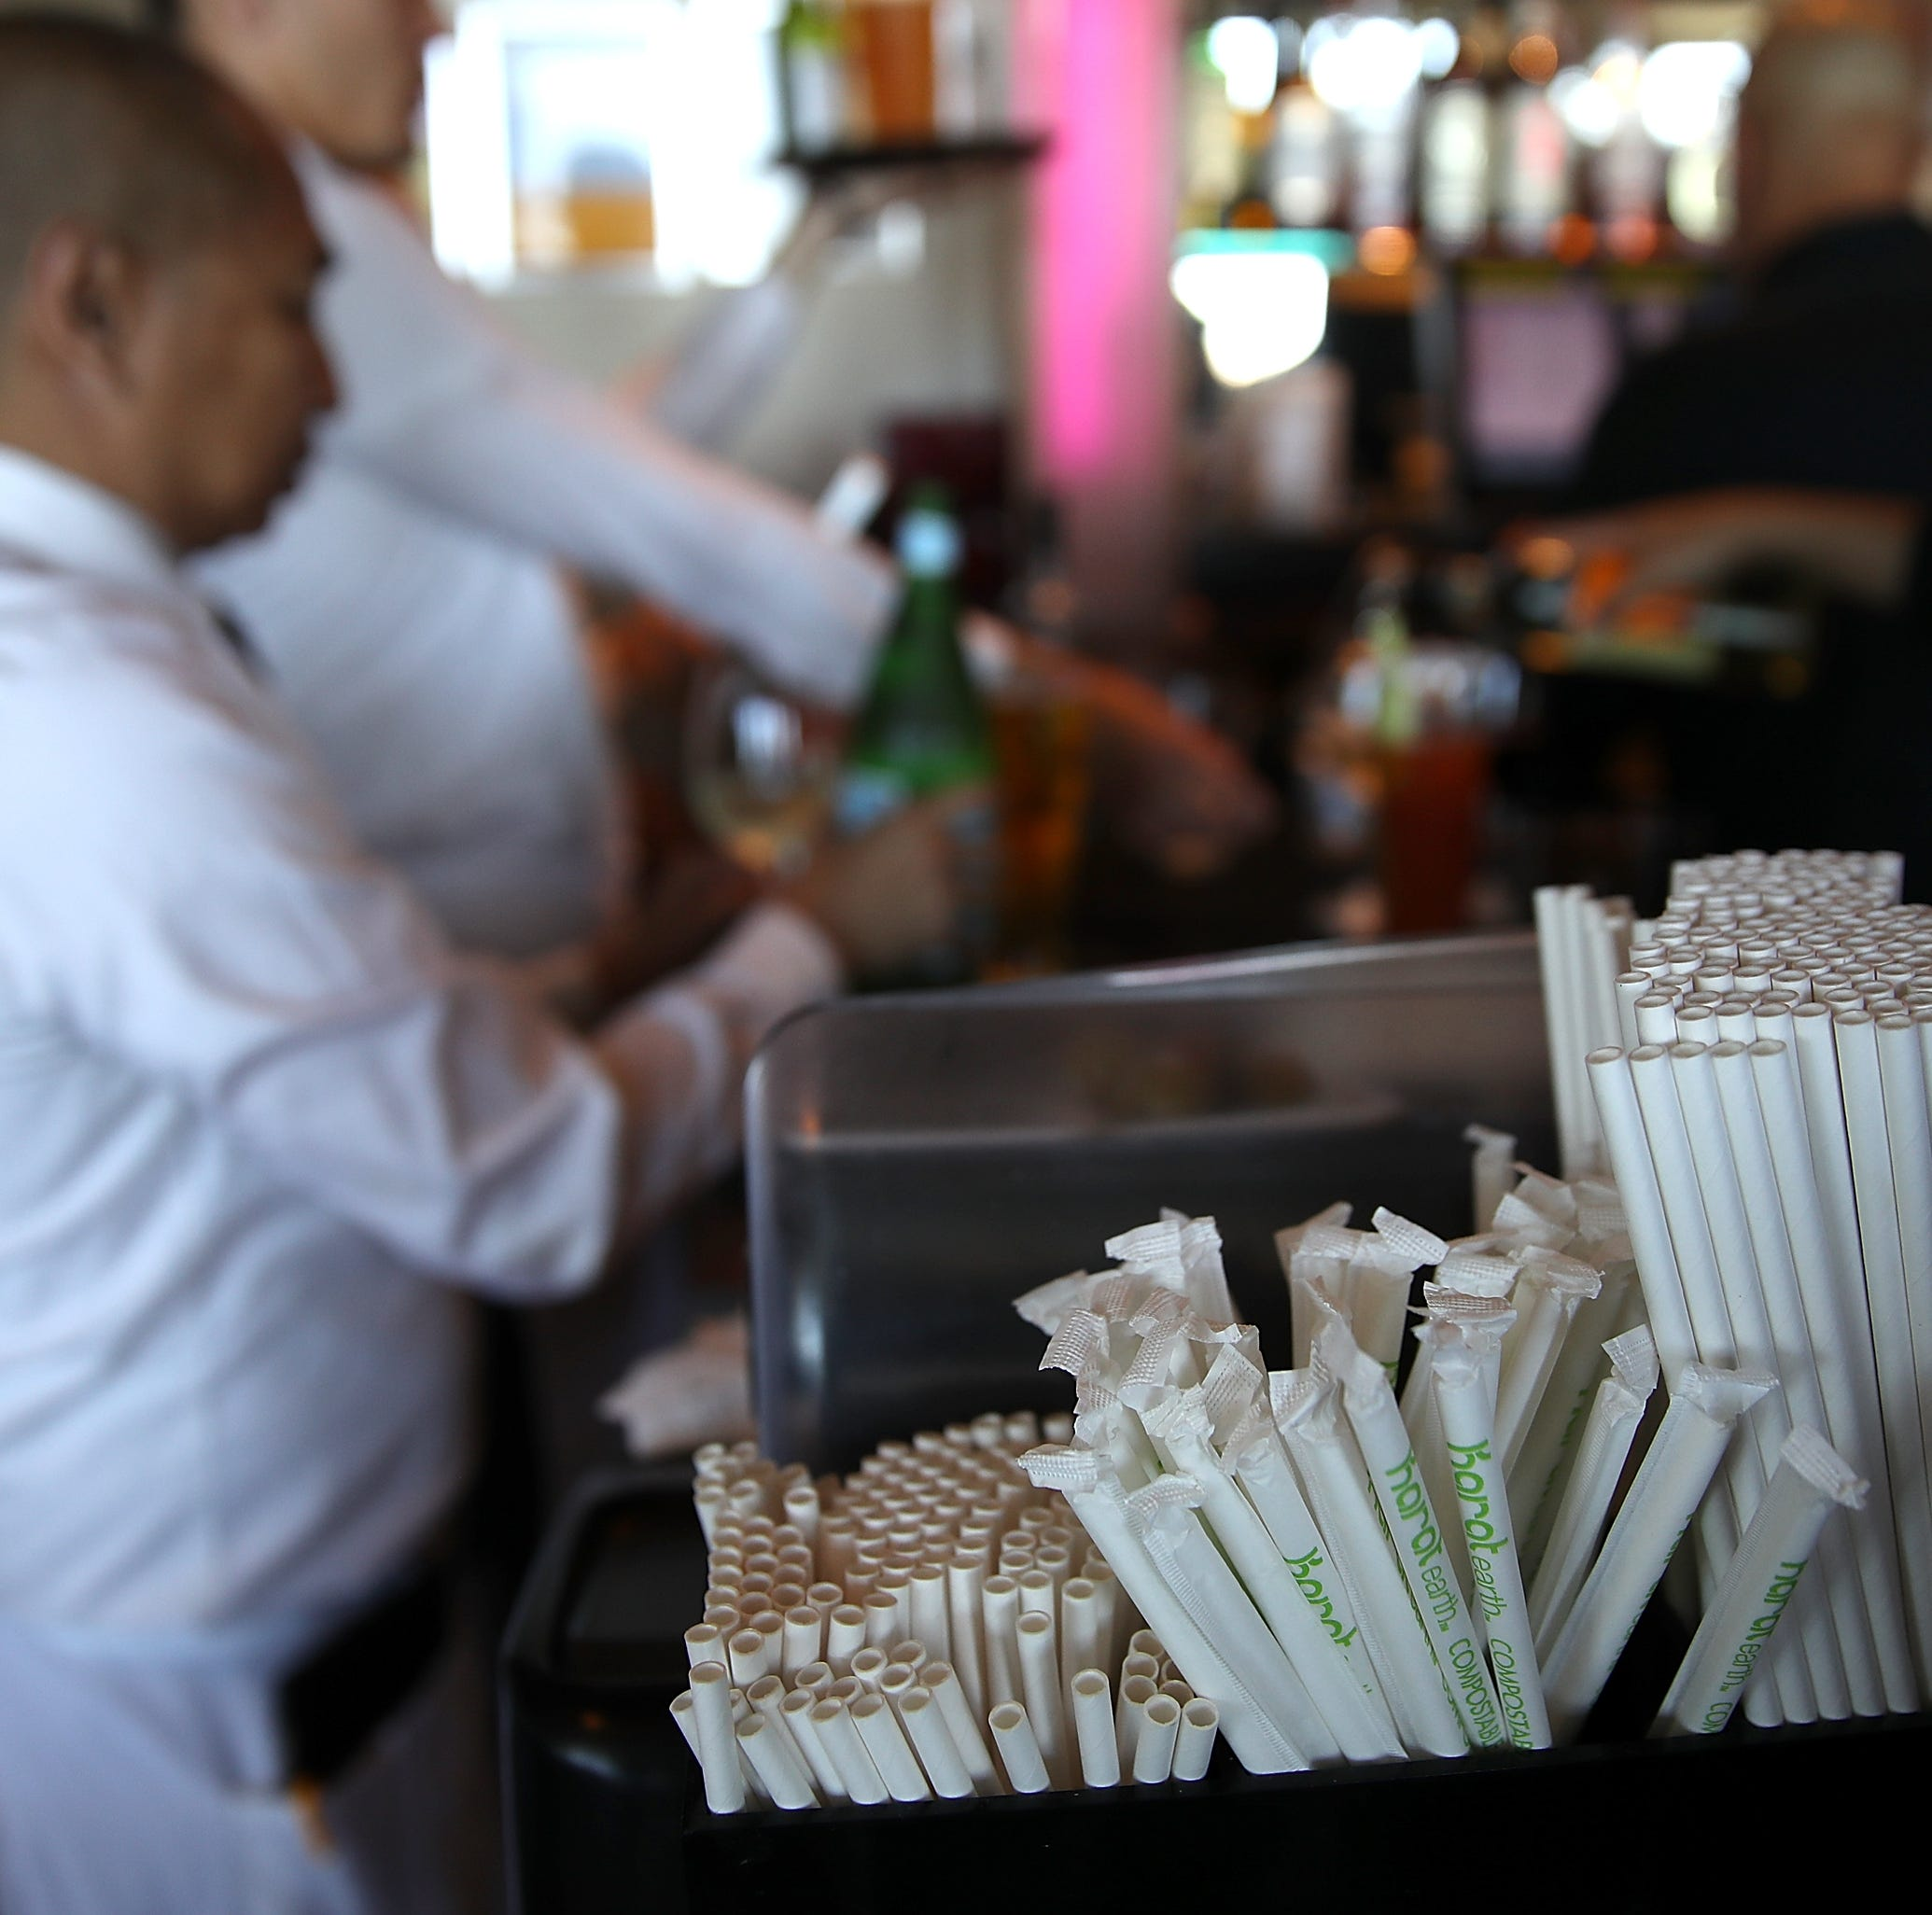 Why I introduced a ban on plastic straws for NYC